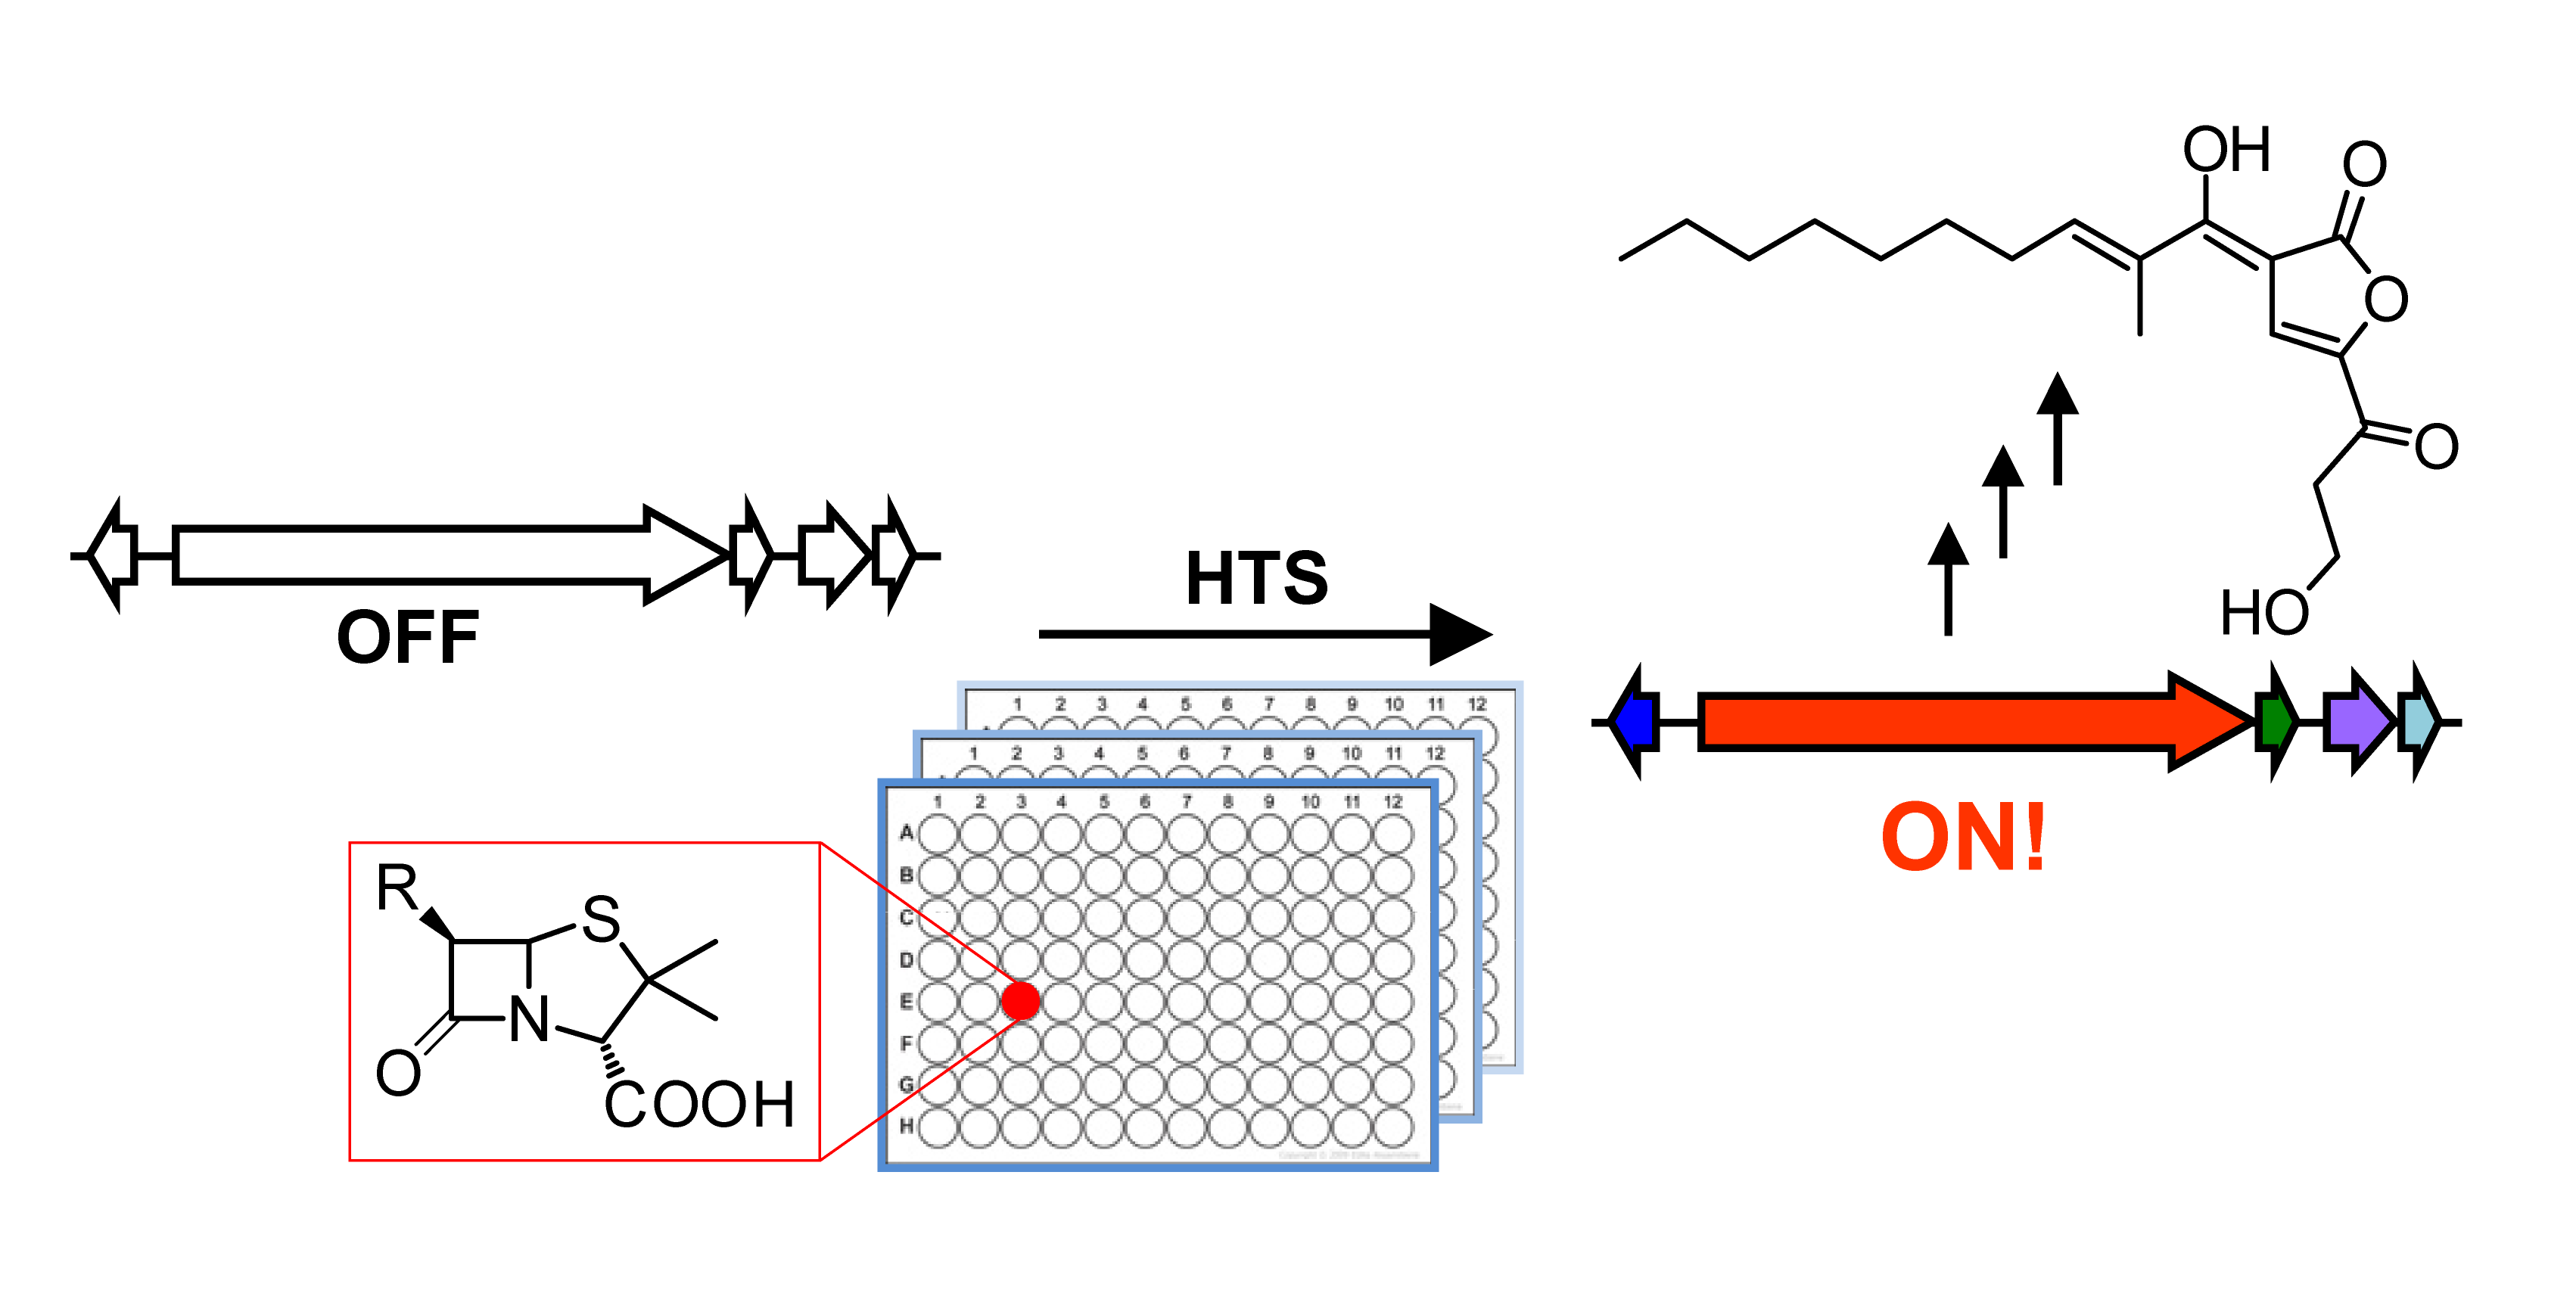 Figure 1. Our strategy for activating silent gene clusters. A reporter gene inside the gene cluster of interest affords a facile read-out for its activity while small molecule libraries provide candidate elicitors. High throughput screening identifies activators for the target cluster facilitating elucidation of the products structure and function.